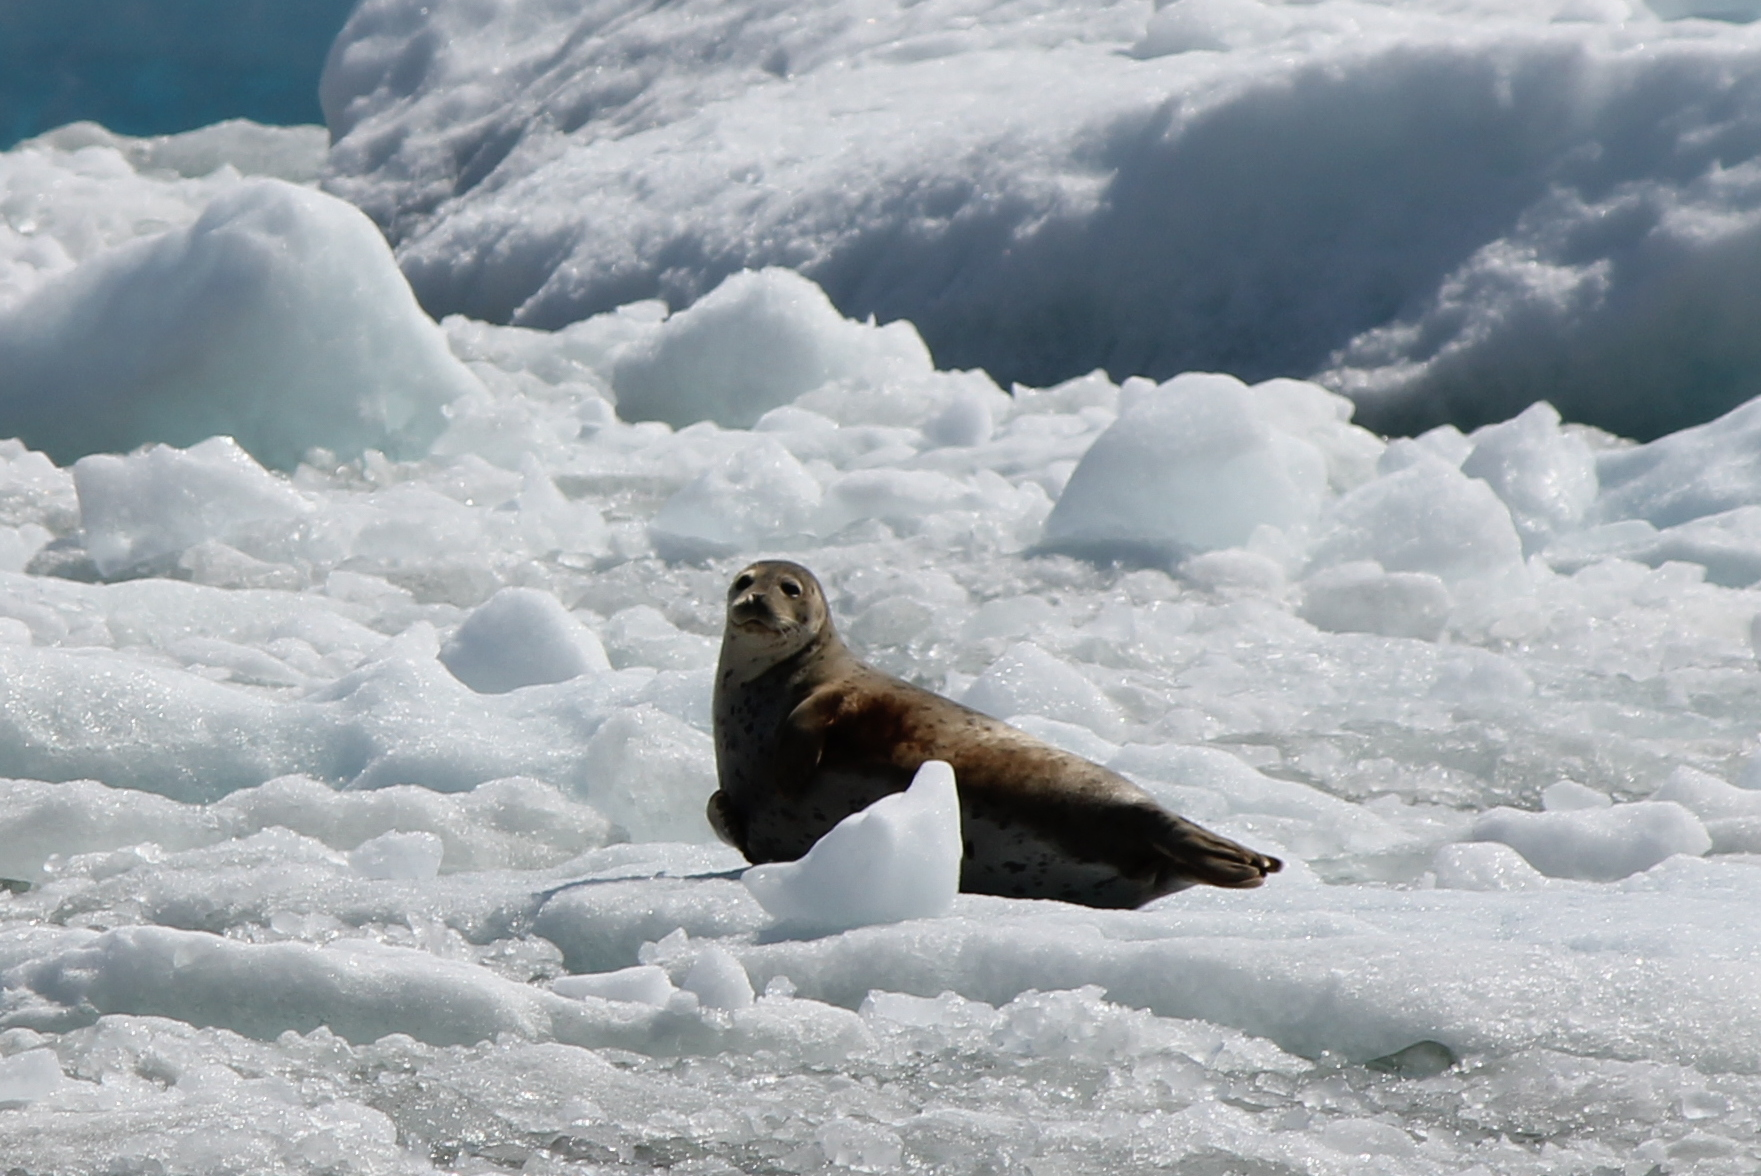 Seals are just dog mermaids. Think about it.